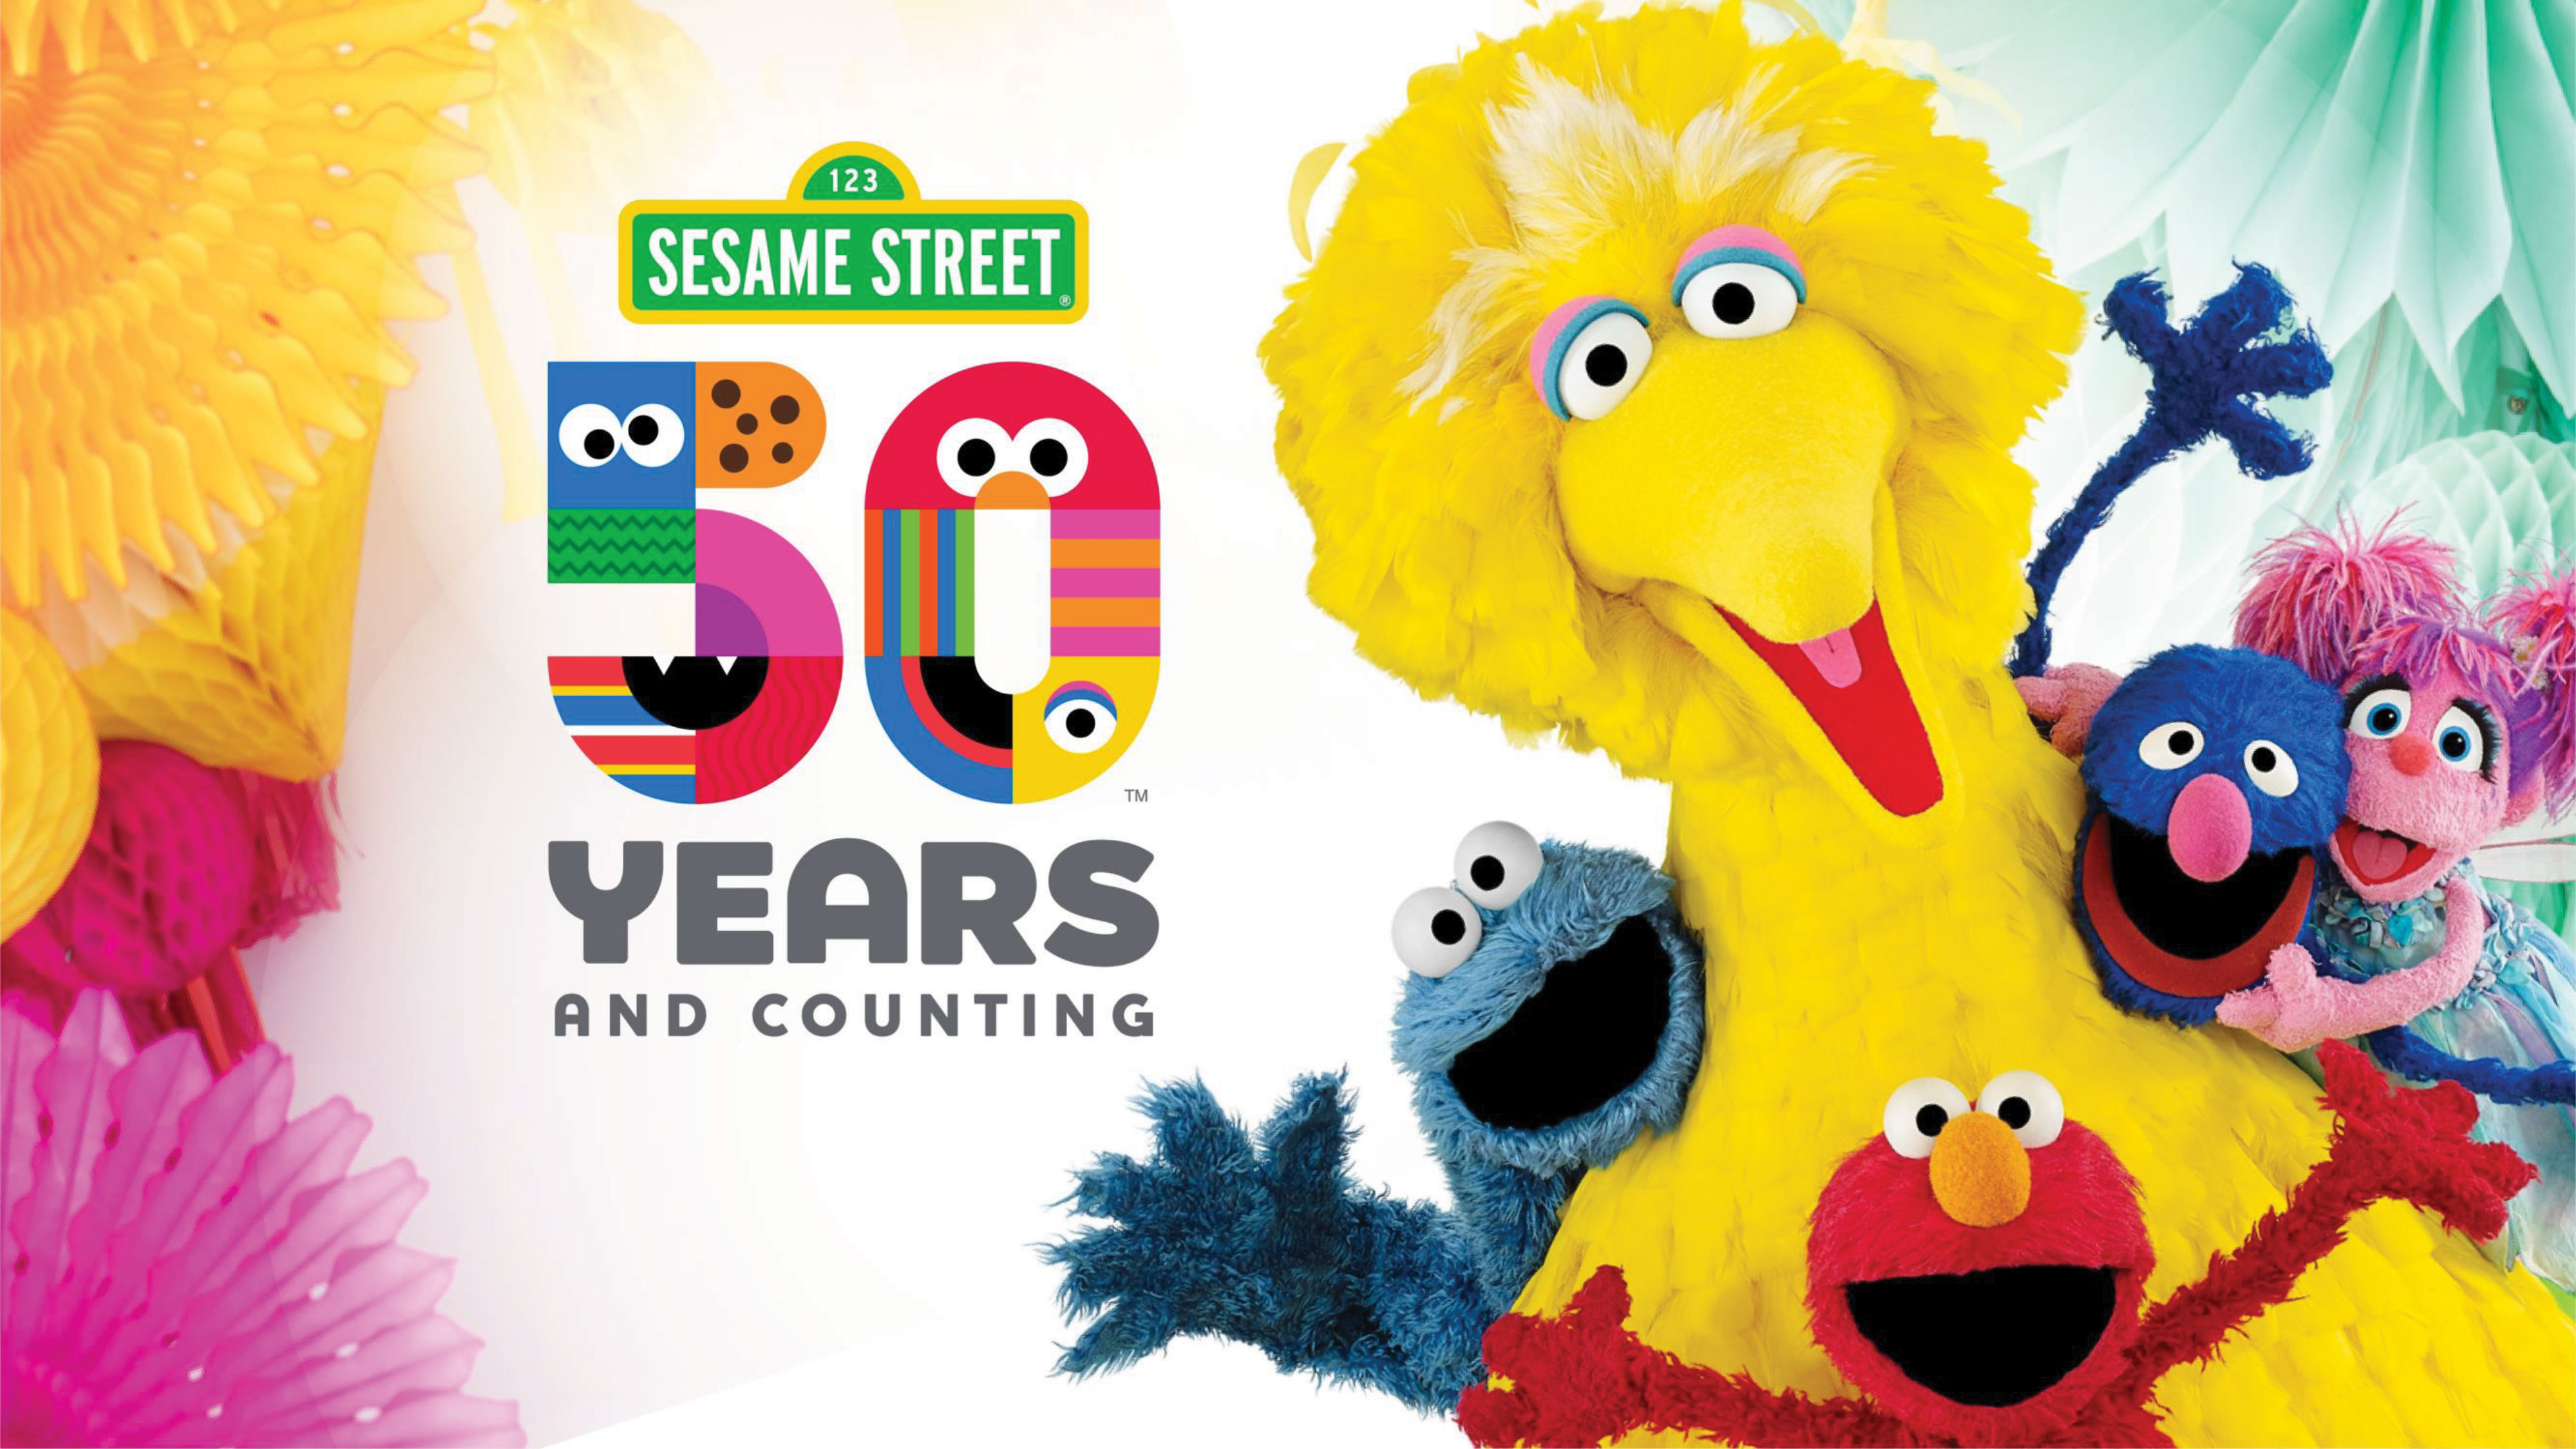 Sesame Street's 50 Years & Counting